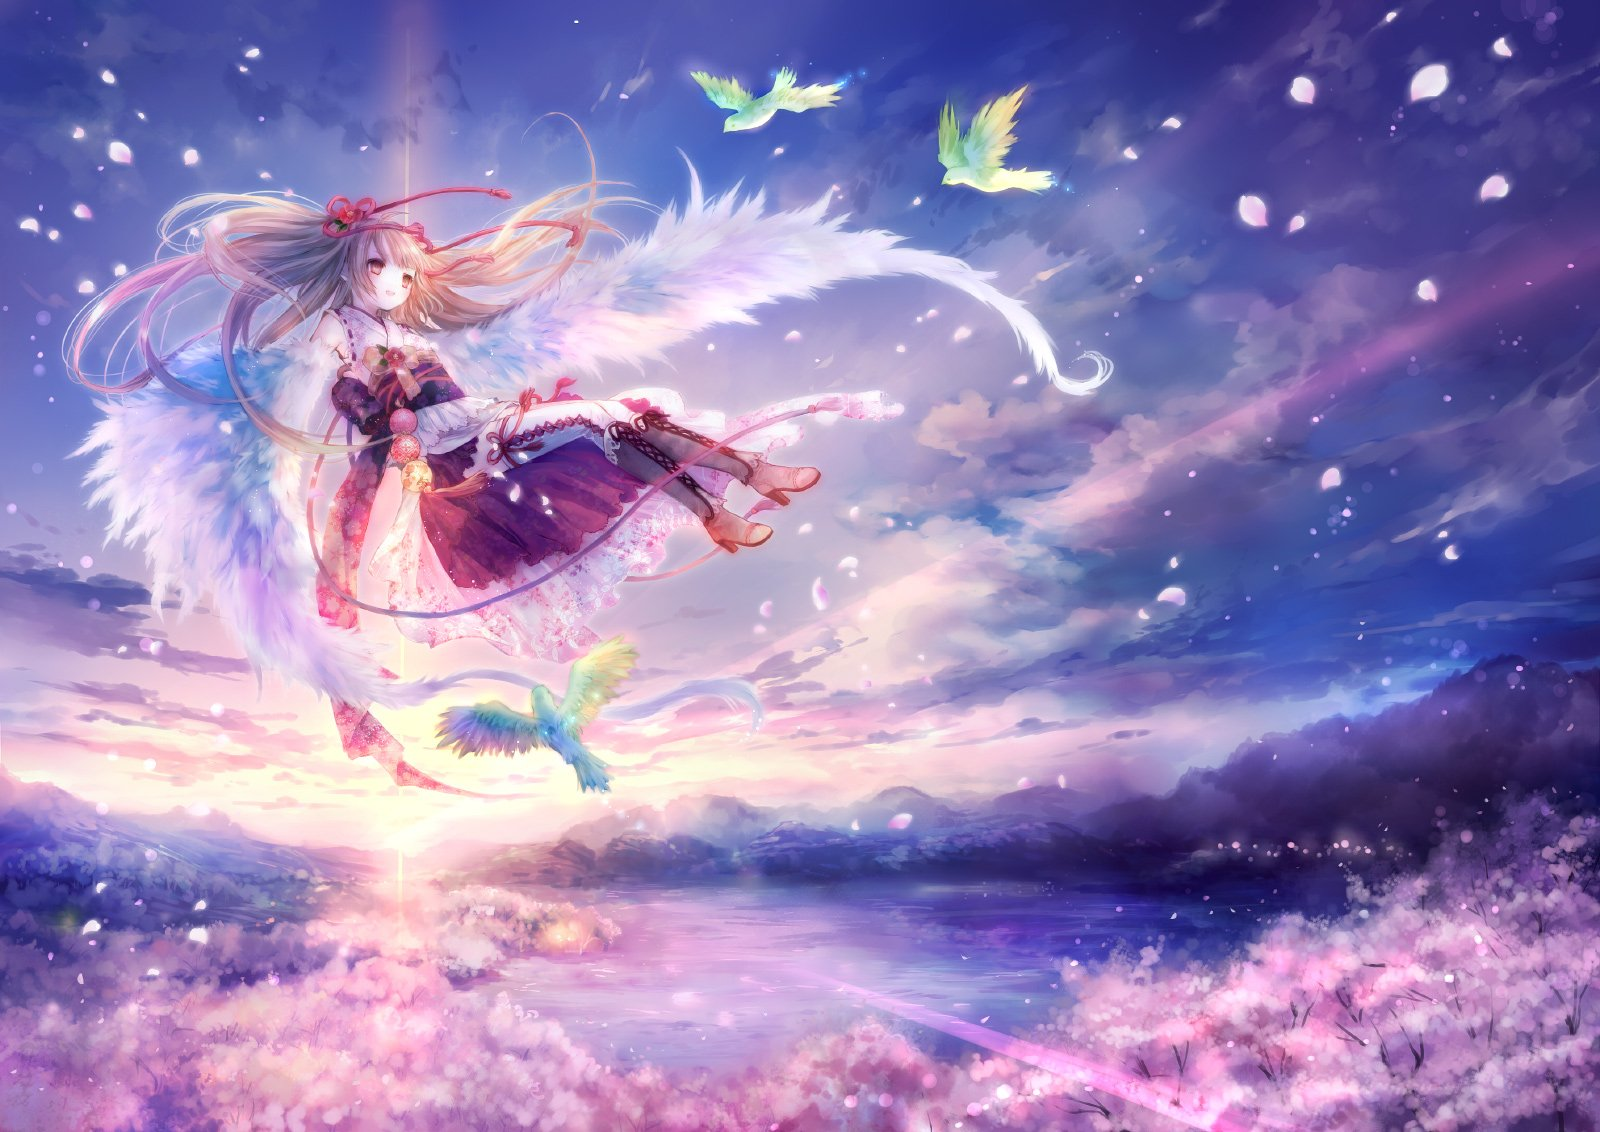 Wallpapers ID:110067